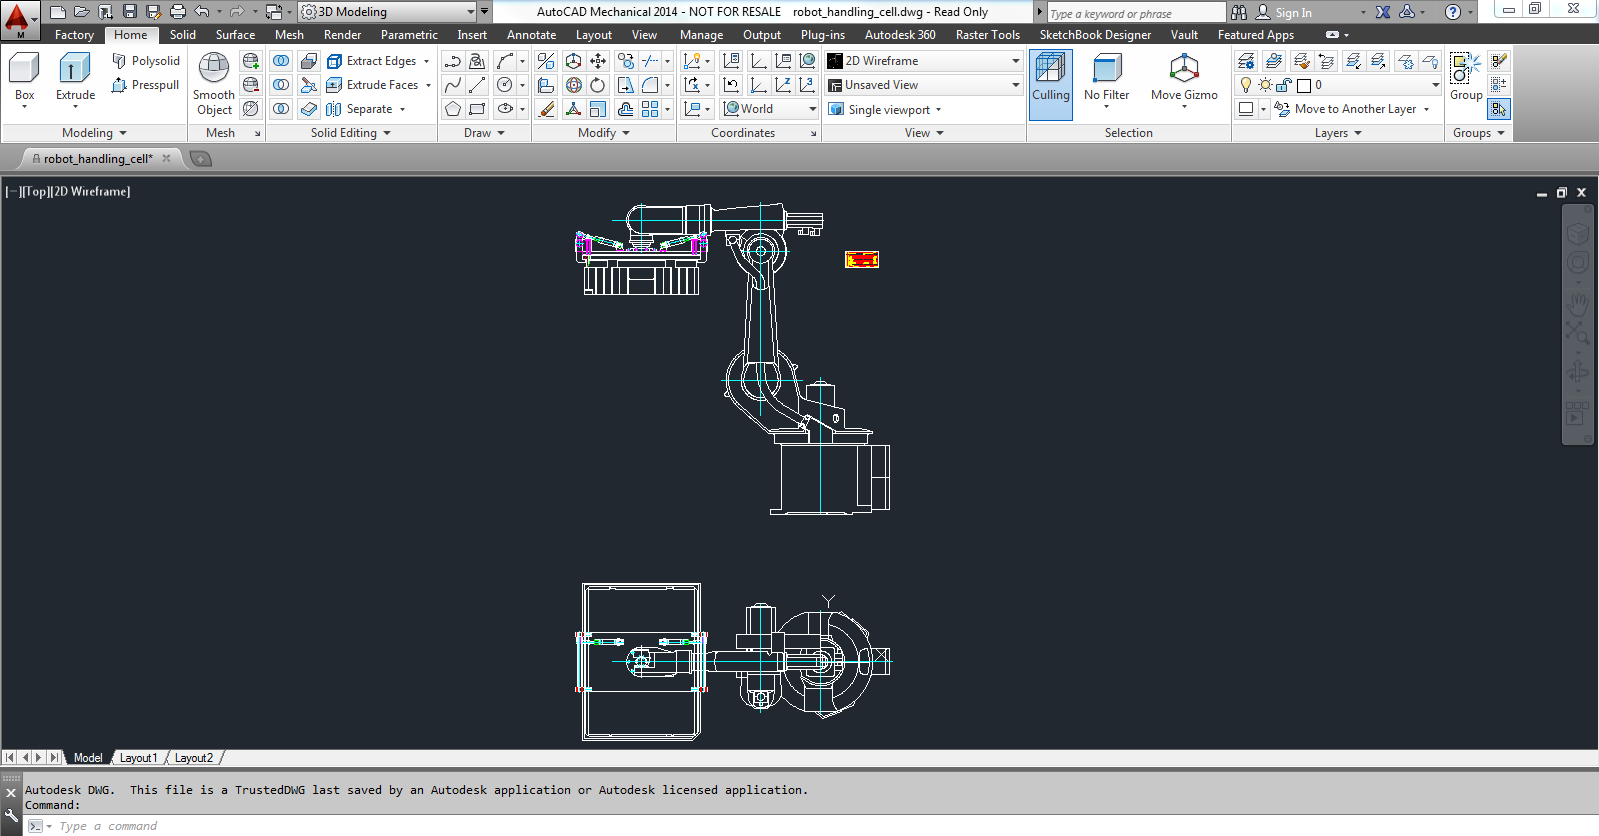 autocad mechcanical